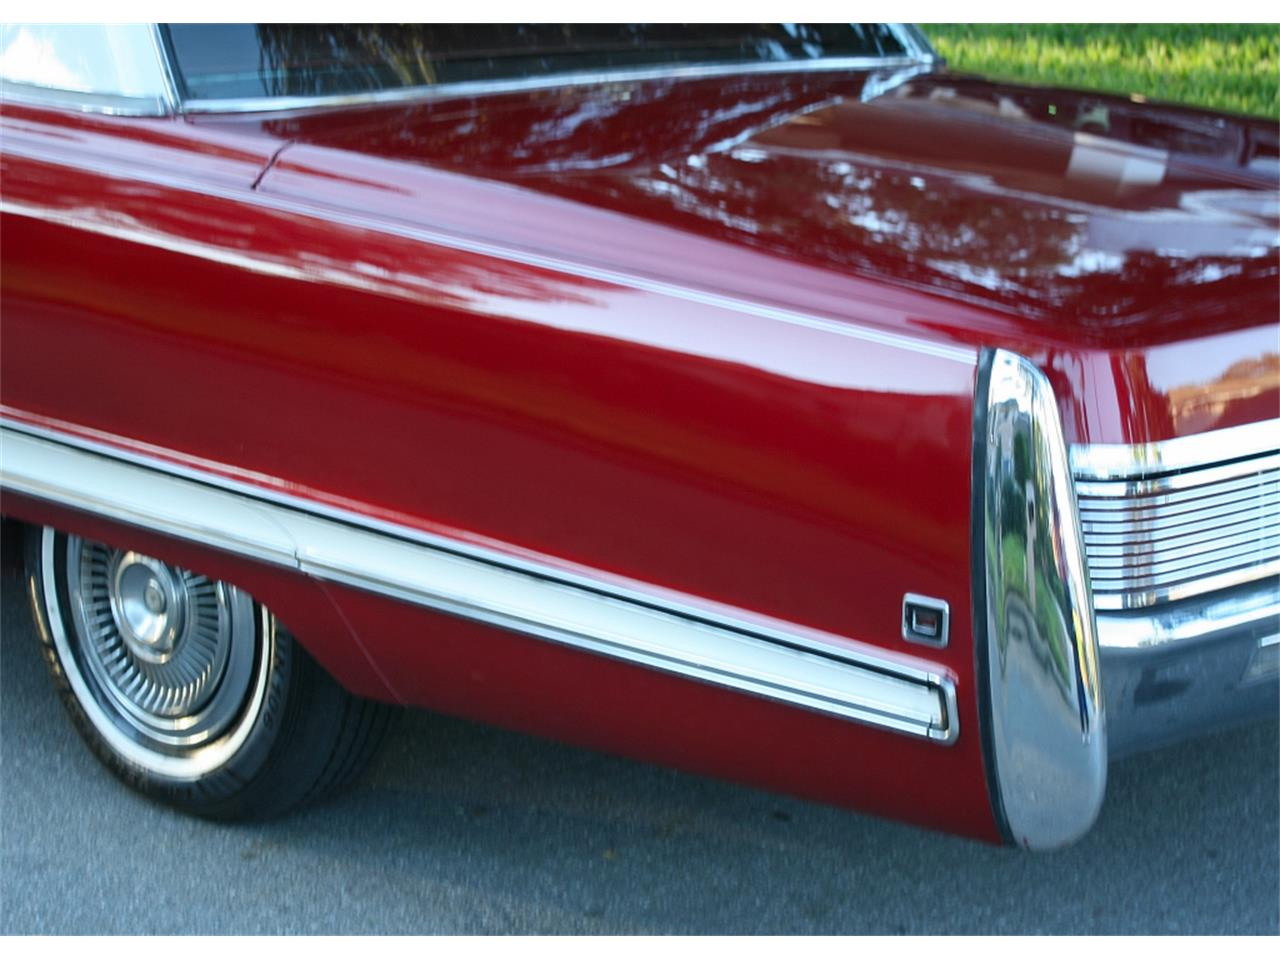 1968 Chrysler Imperial for sale in Lakeland, FL – photo 27